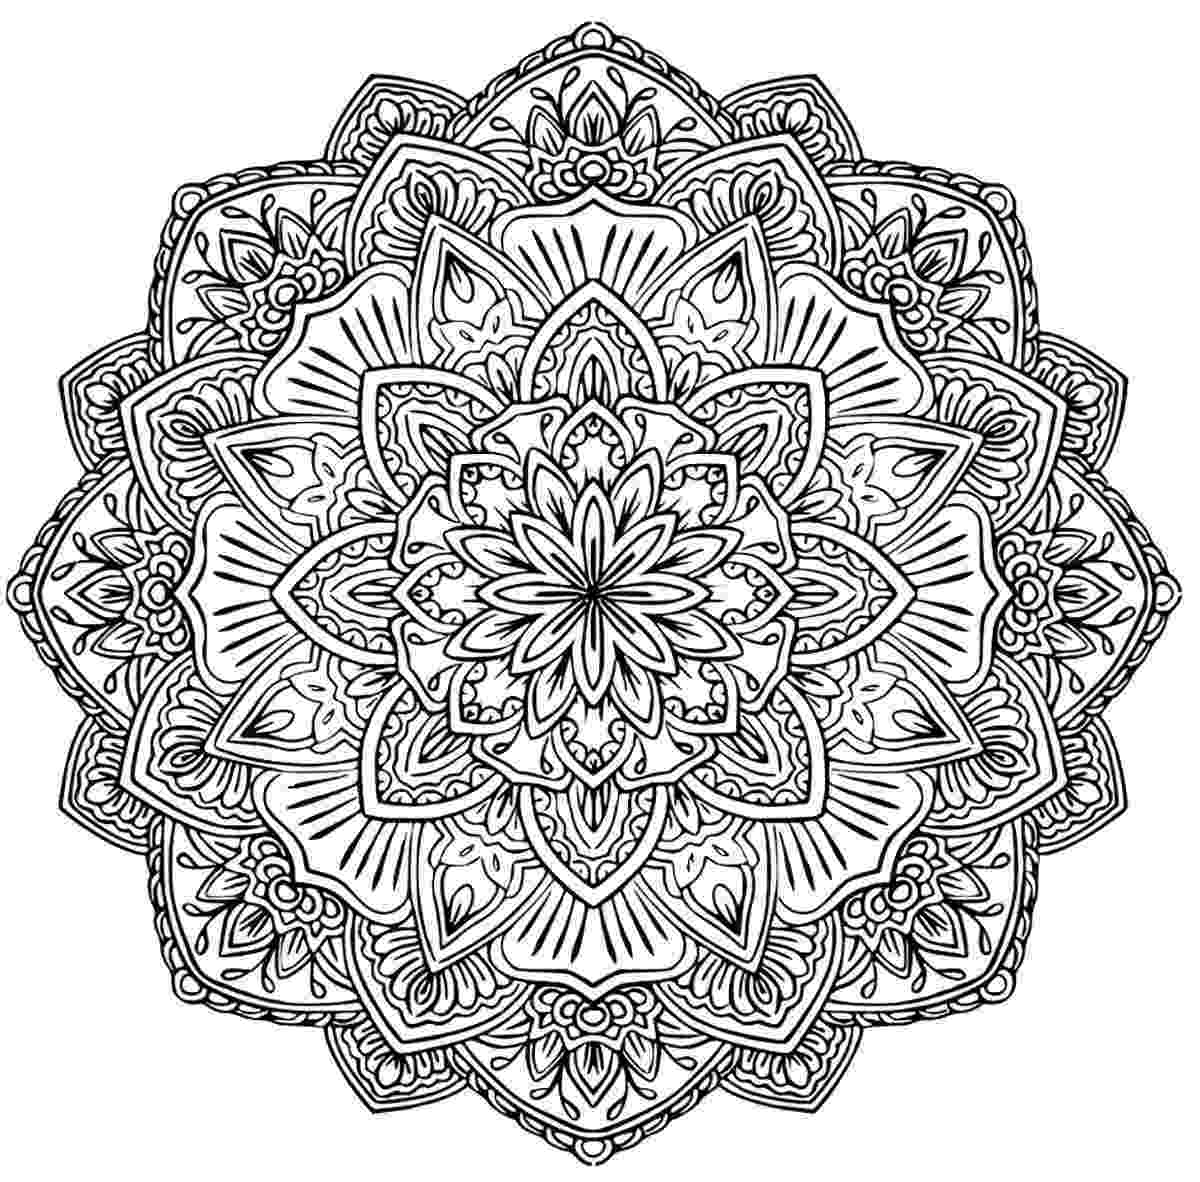 mandala coloring pages for adults free 24 more free printable adult coloring pages printable free pages mandala for adults coloring